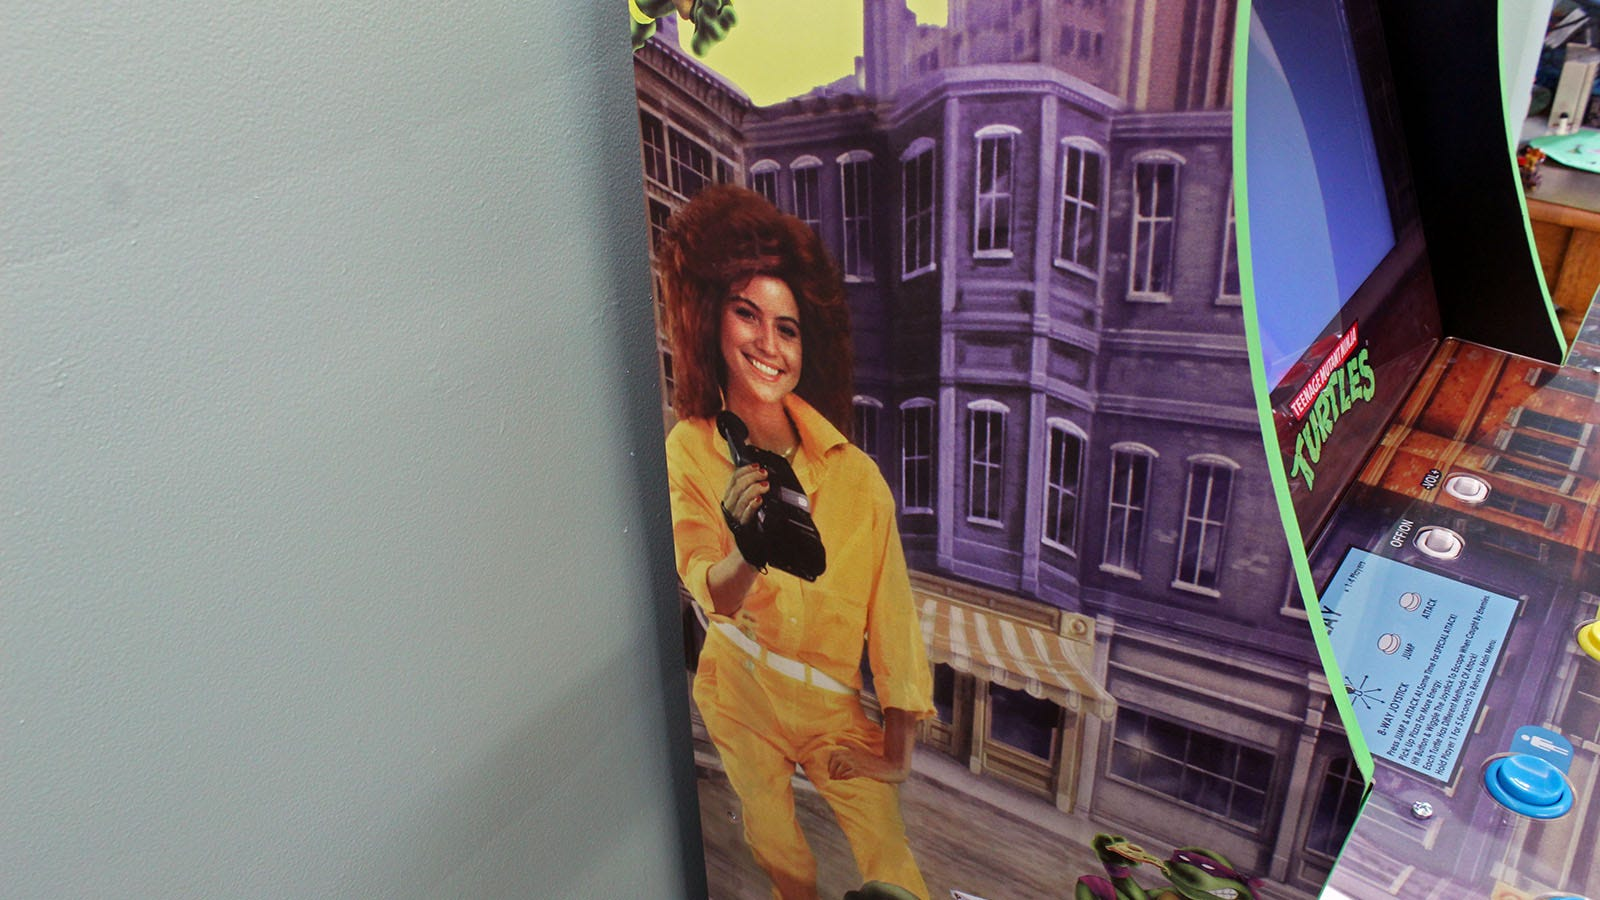 """A woman in a yellow jumpsuit with teased red hair holding an old camcorder on the side of the Arcade1Up """"Teenage Mutant Ninja Turtles"""" arcade."""